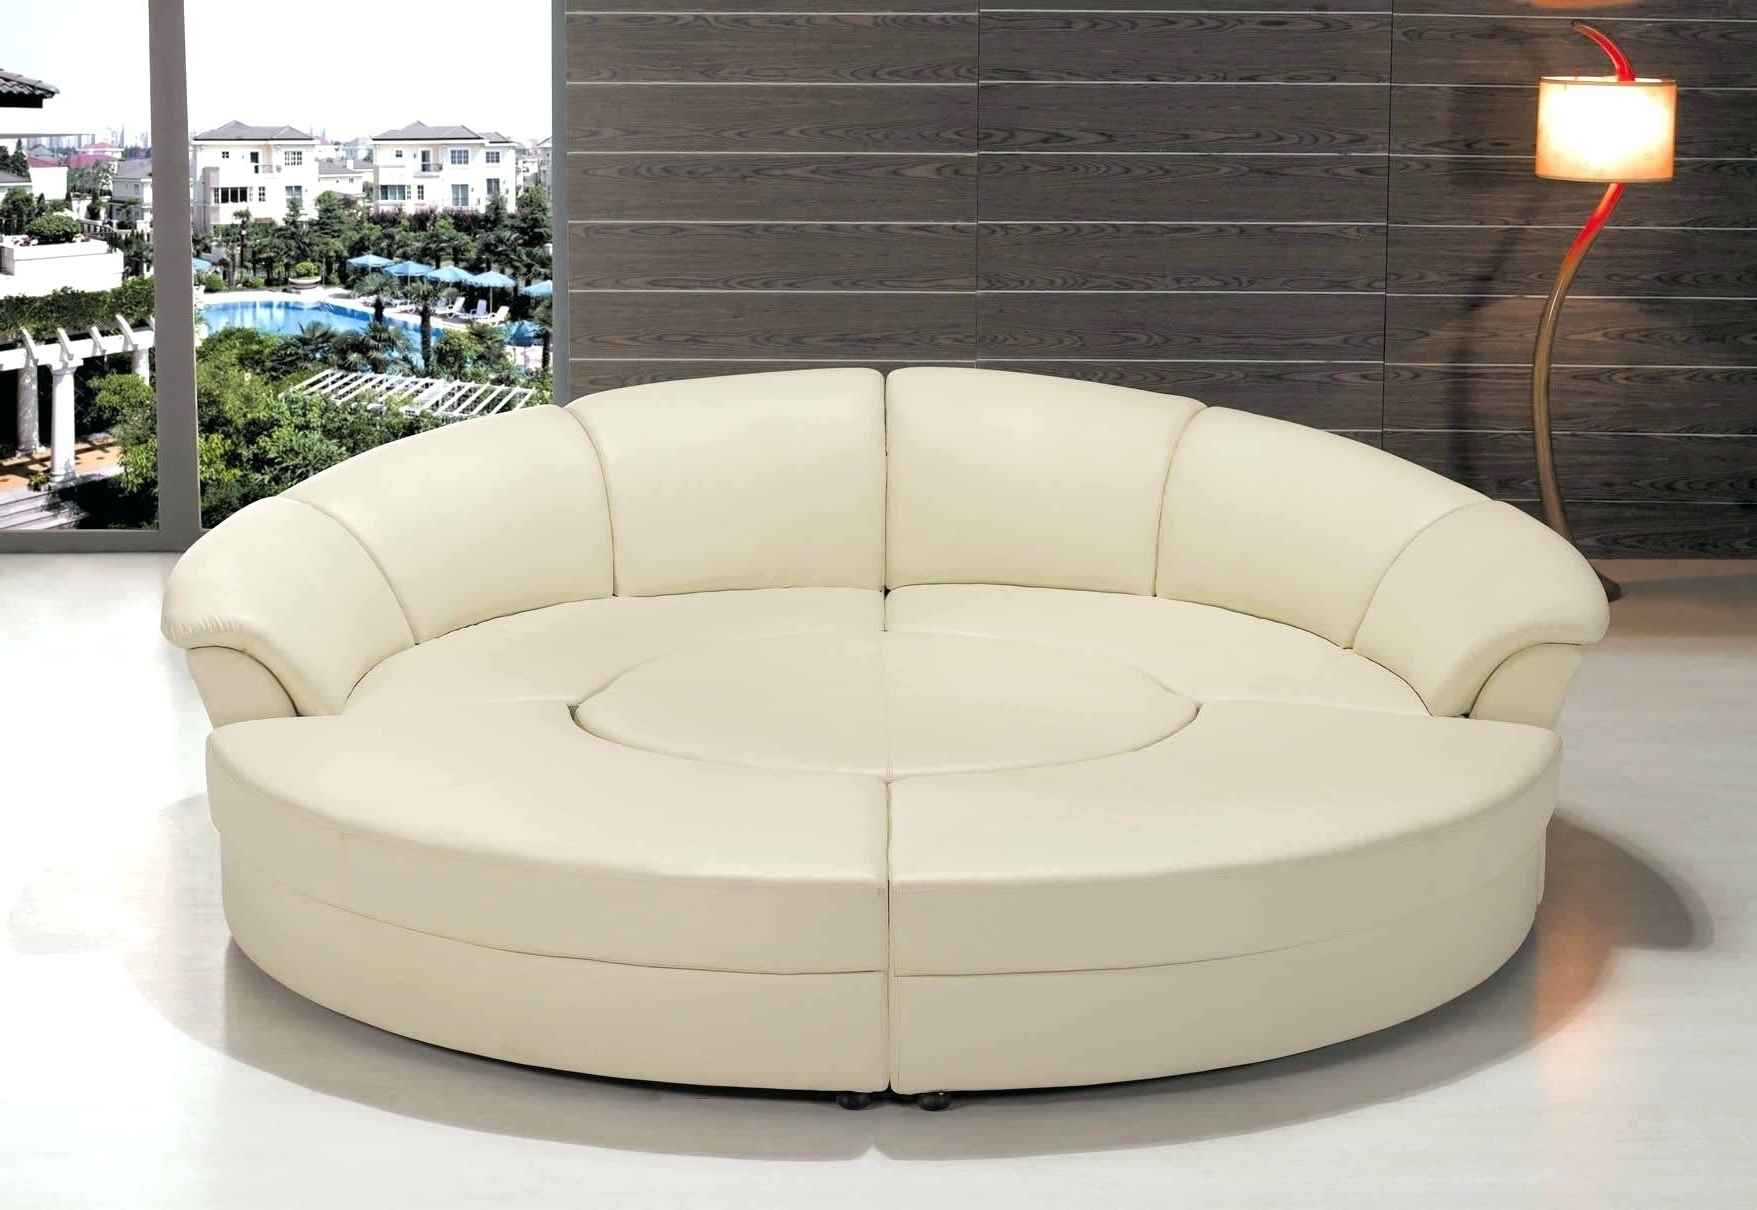 Furniture : Round Sectional Sofa Covers New Round Sofa Covers Inside 2019 Round Sectional Sofas (View 5 of 20)